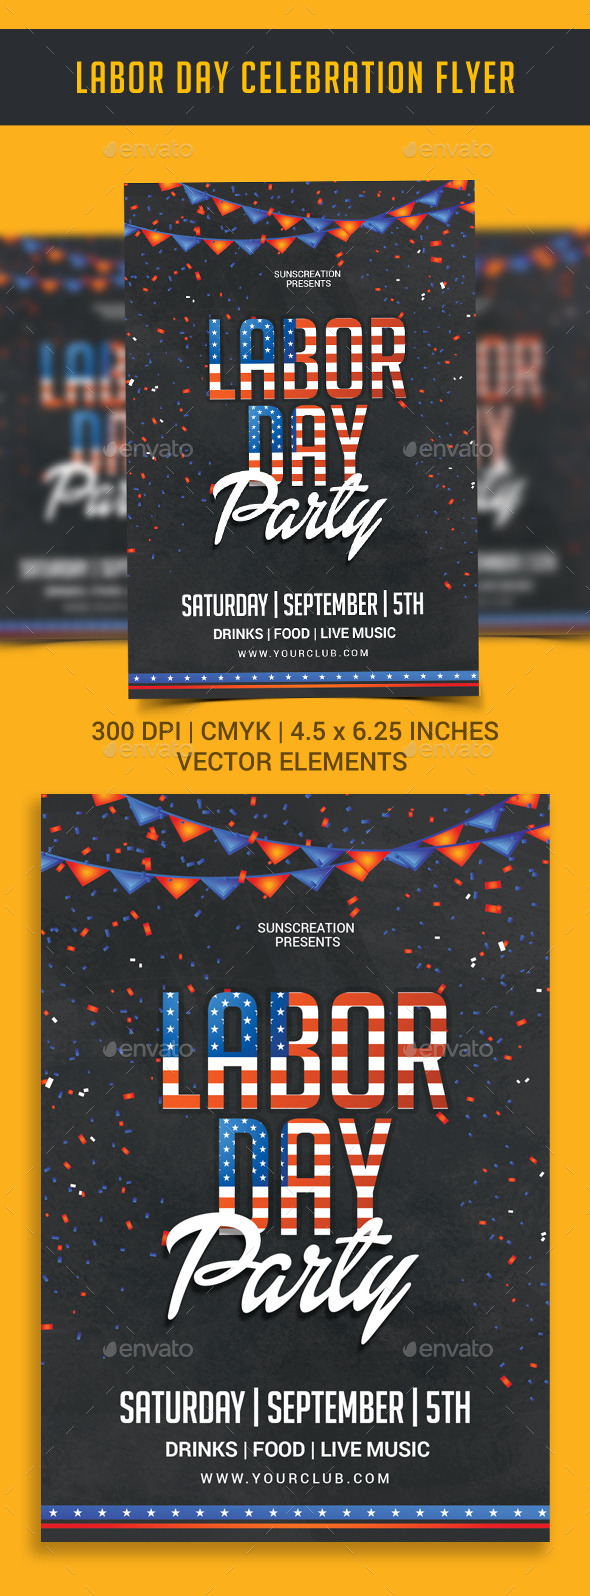 Labor Day Celebration Party Flyer Template - Clubs & Parties Events